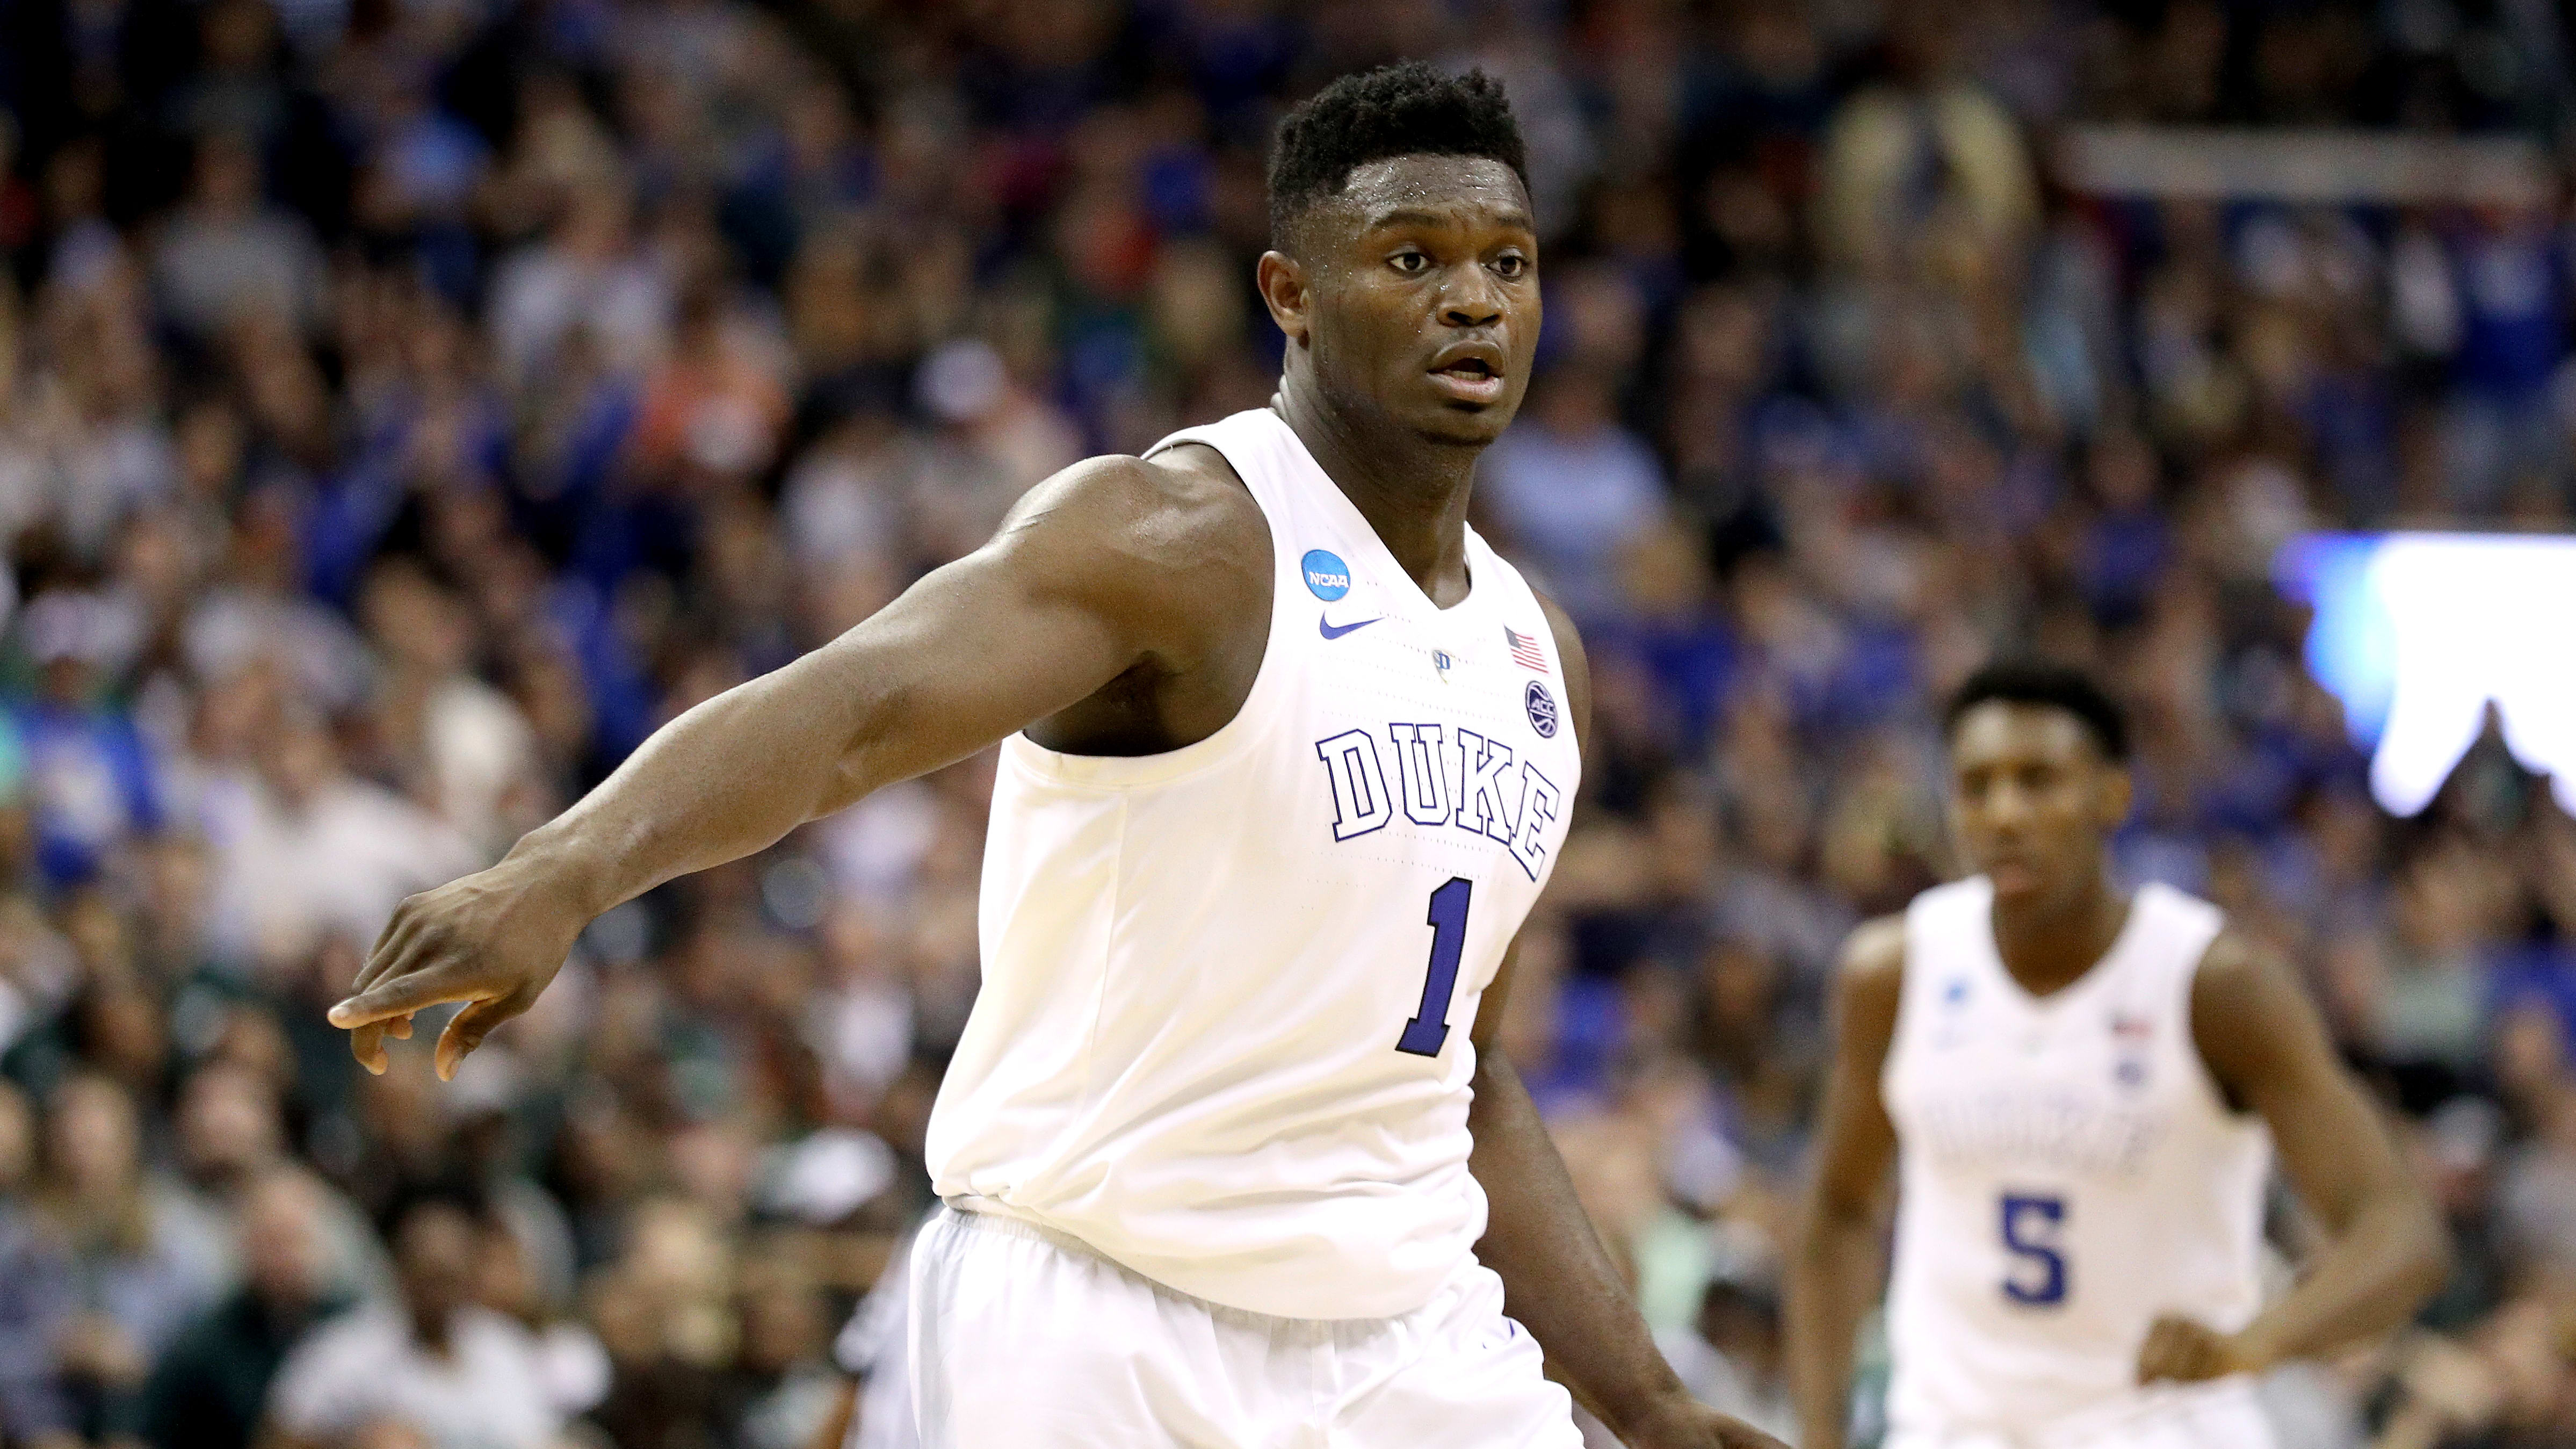 WASHINGTON, DC - MARCH 31:  Zion Williamson #1 of the Duke Blue Devils reacts against the Michigan State Spartans during the second half in the East Regional game of the 2019 NCAA Men's Basketball Tournament at Capital One Arena on March 31, 2019 in Washington, DC. (Photo by Patrick Smith/Getty Images)